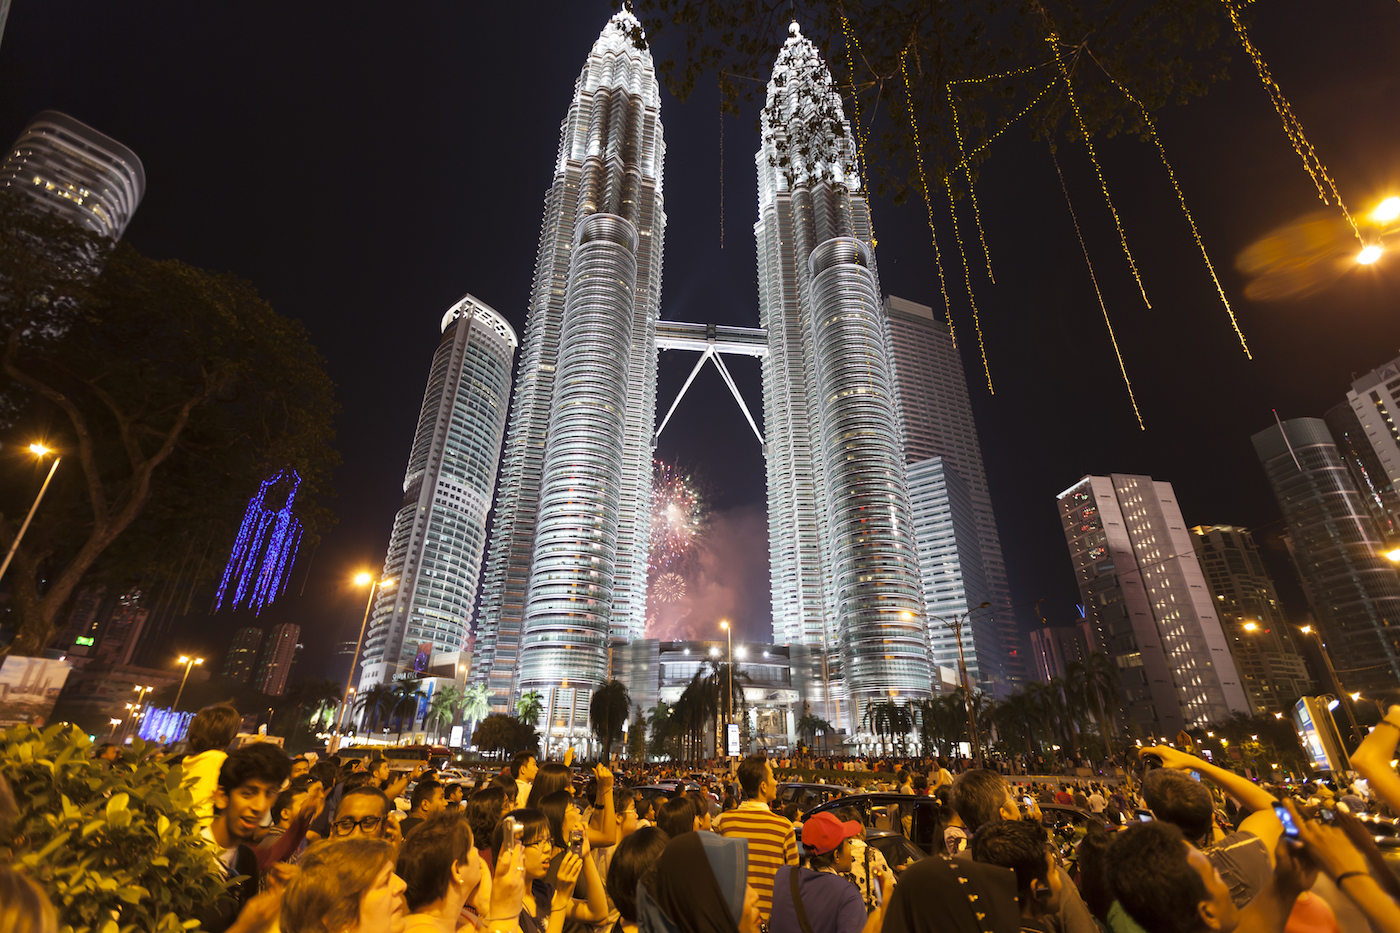 Crowd awaits fireworks at Petronas Twin Towers in KL during New Year celebrations